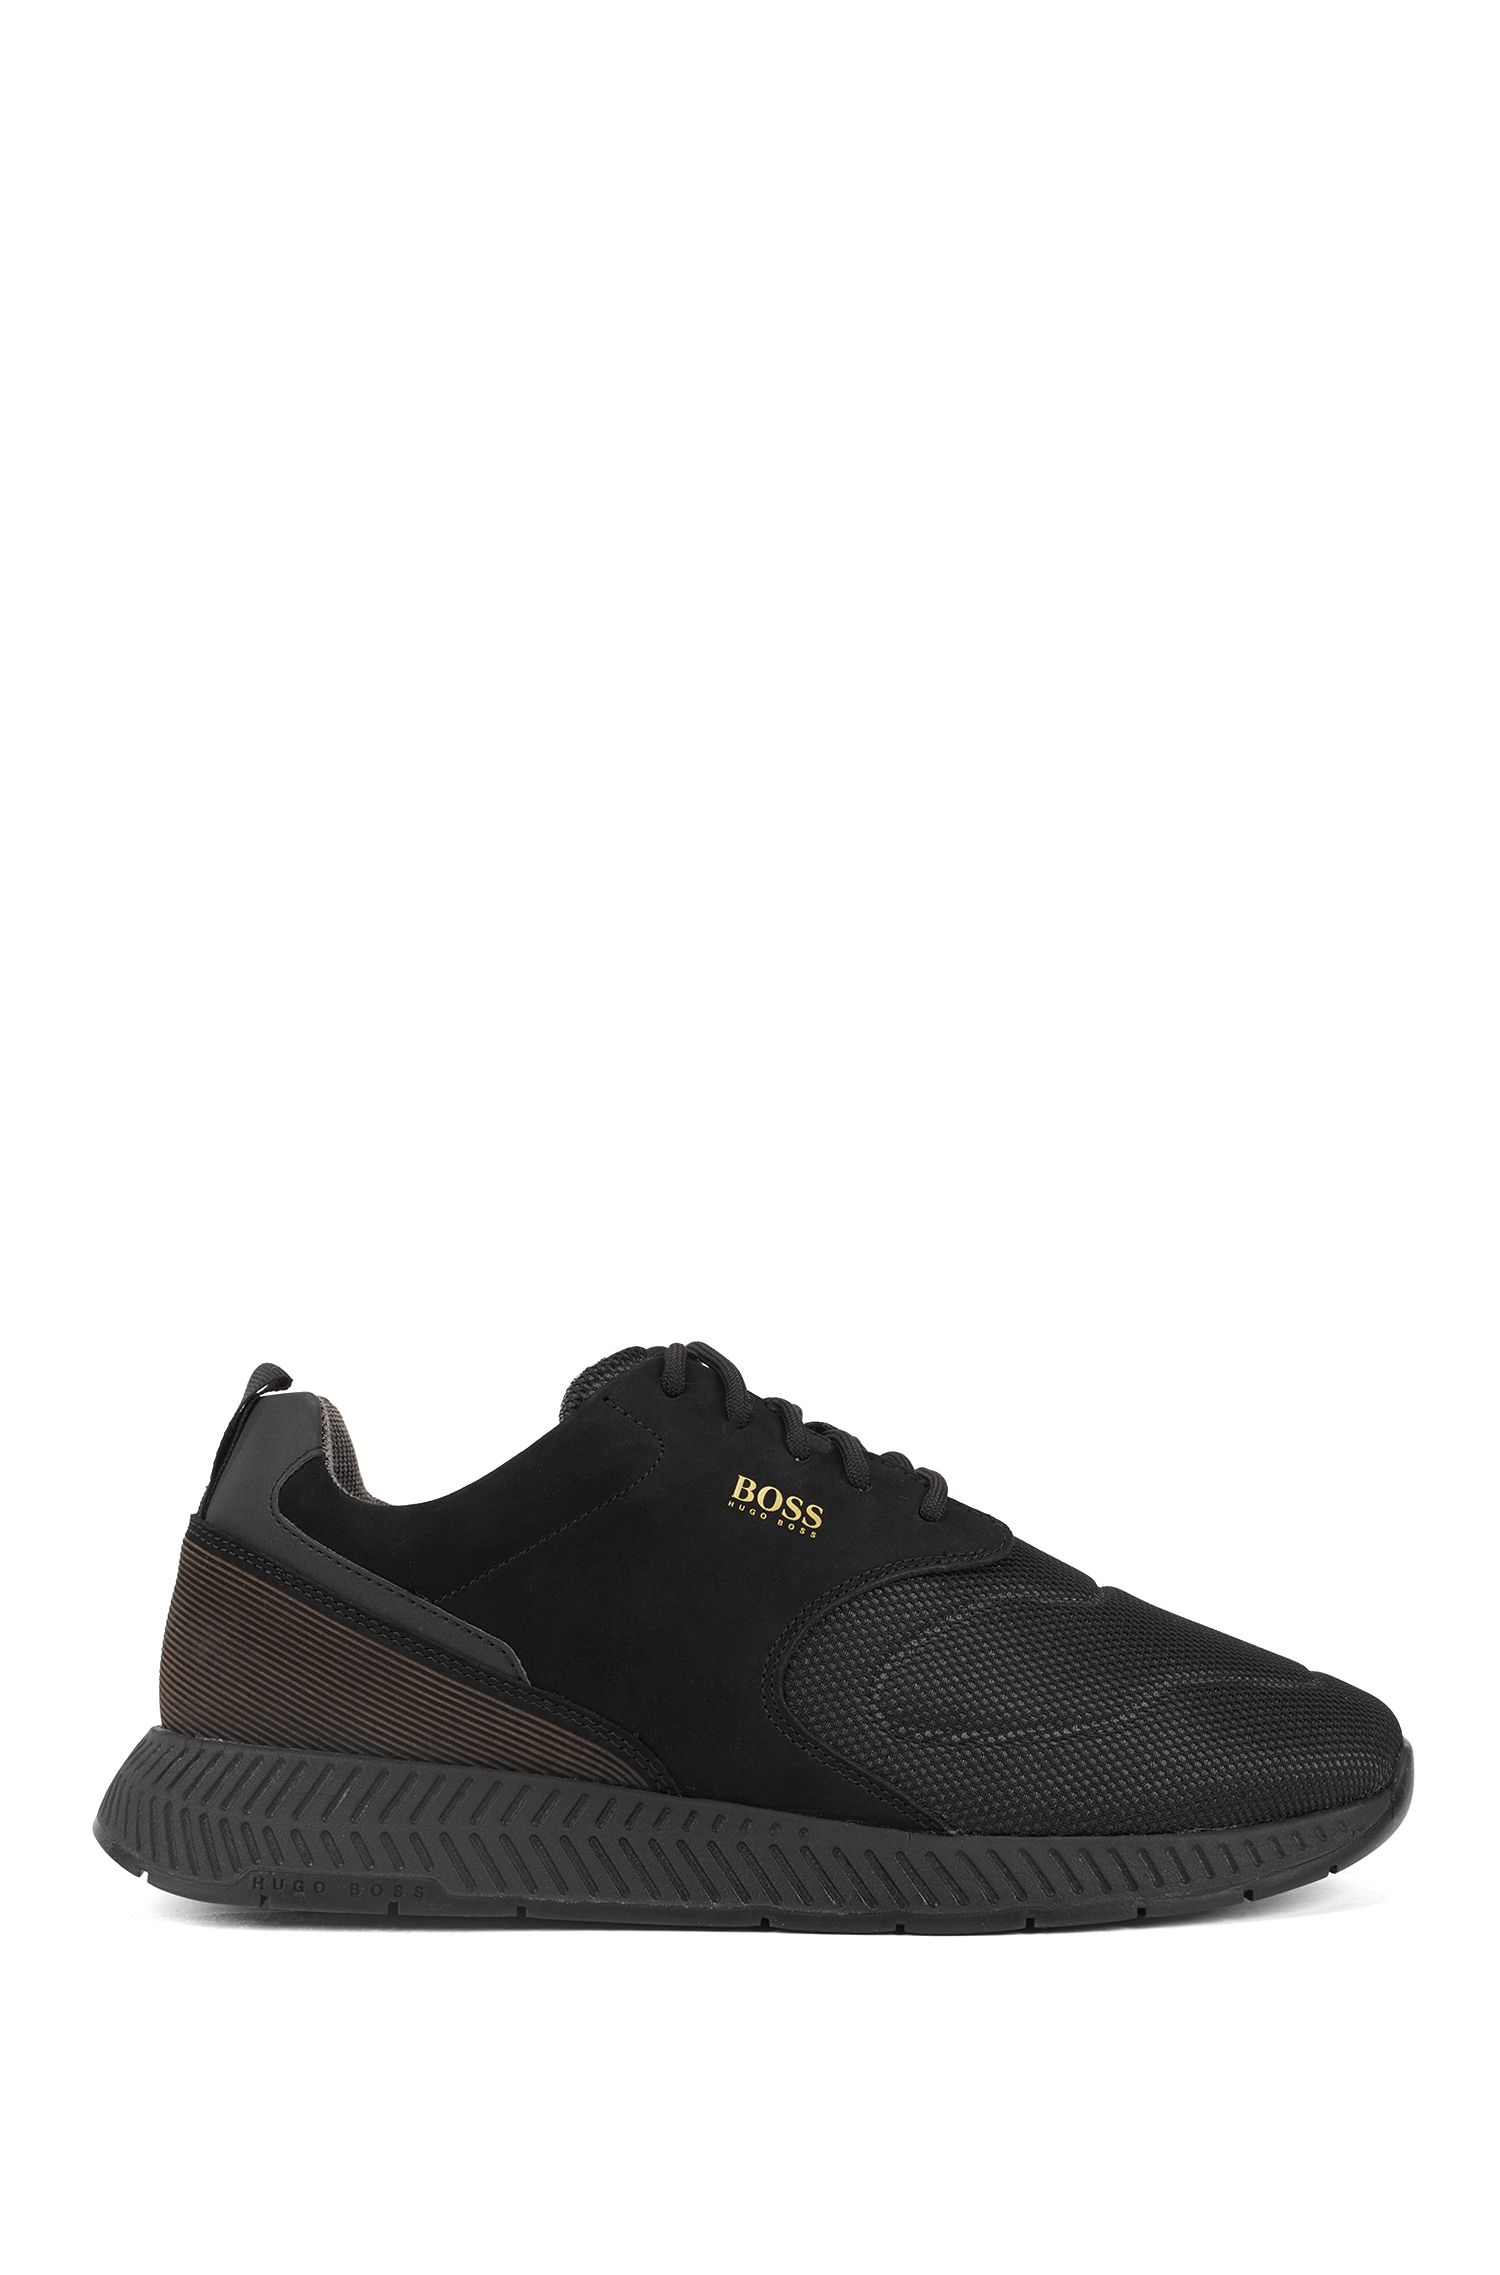 Running-inspired sneakers in nubuck leather and technical fabric, Black